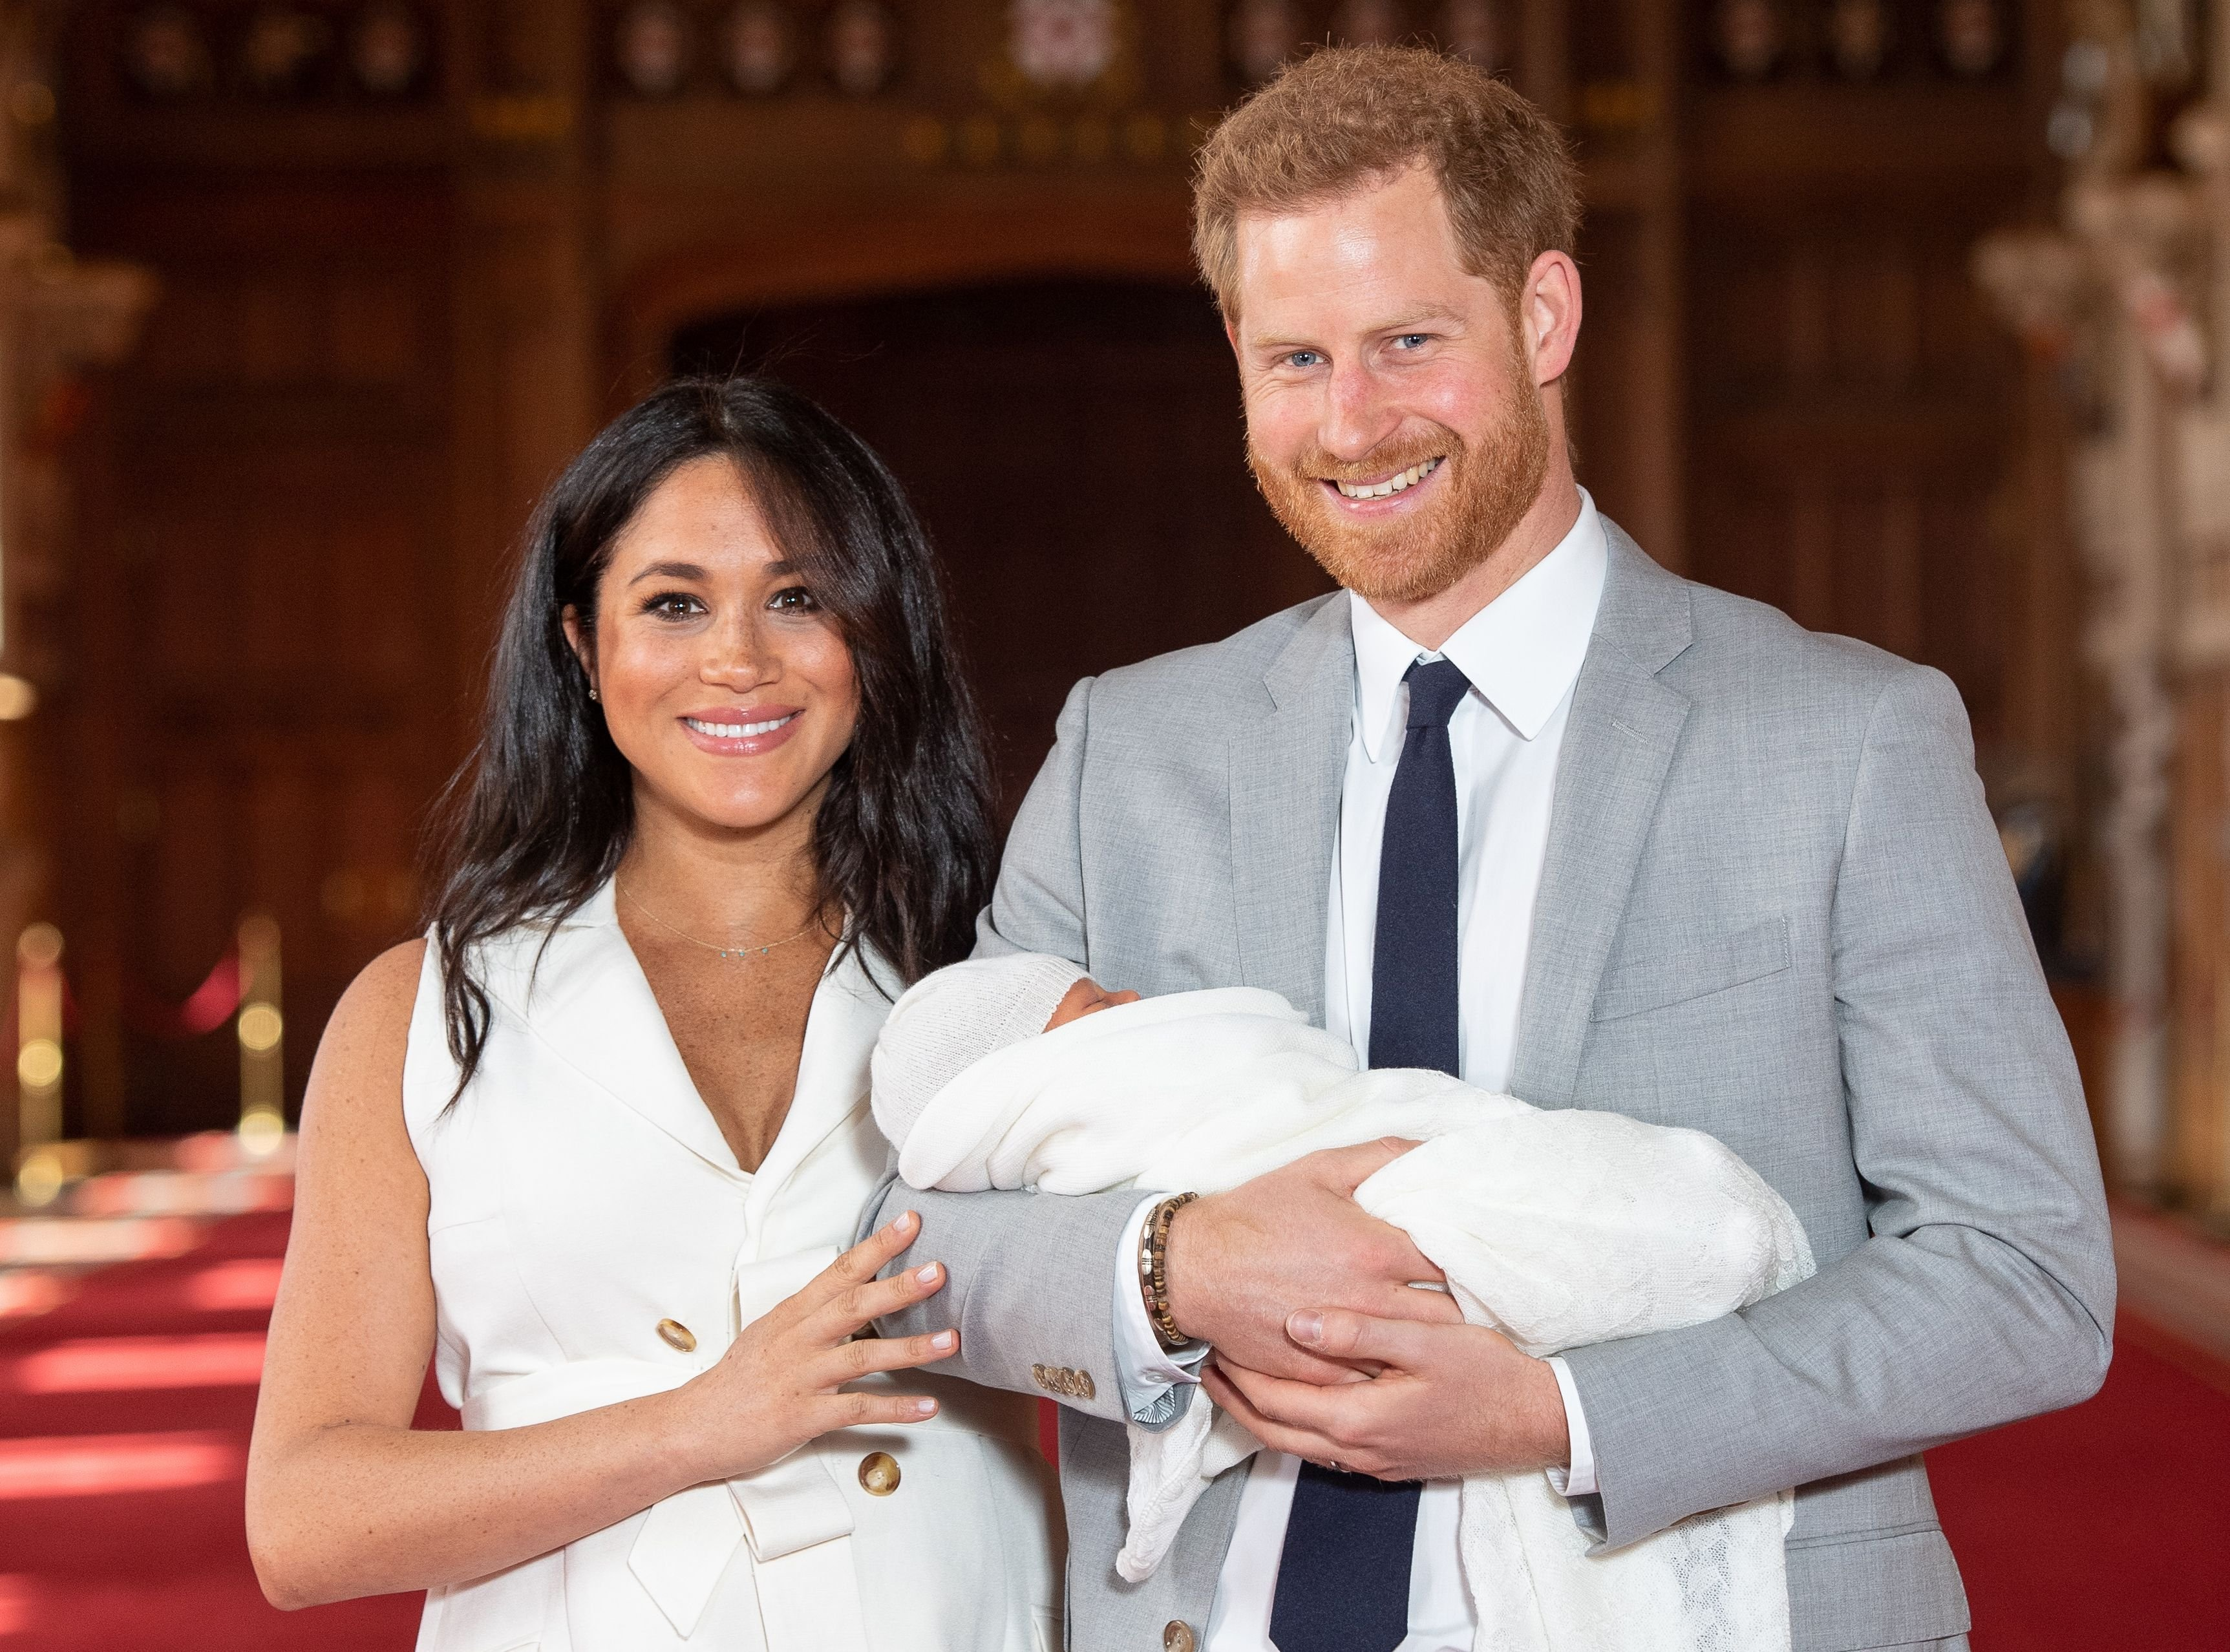 Duchess Meghan and Prince Harry pose for a photo with their newborn baby son, Archie Harrison Mountbatten-Windsor, in St George's Hall in Windsoron May 8, 2019 | Photo:Dominic Lipinski/POOL/AFP/Getty Images